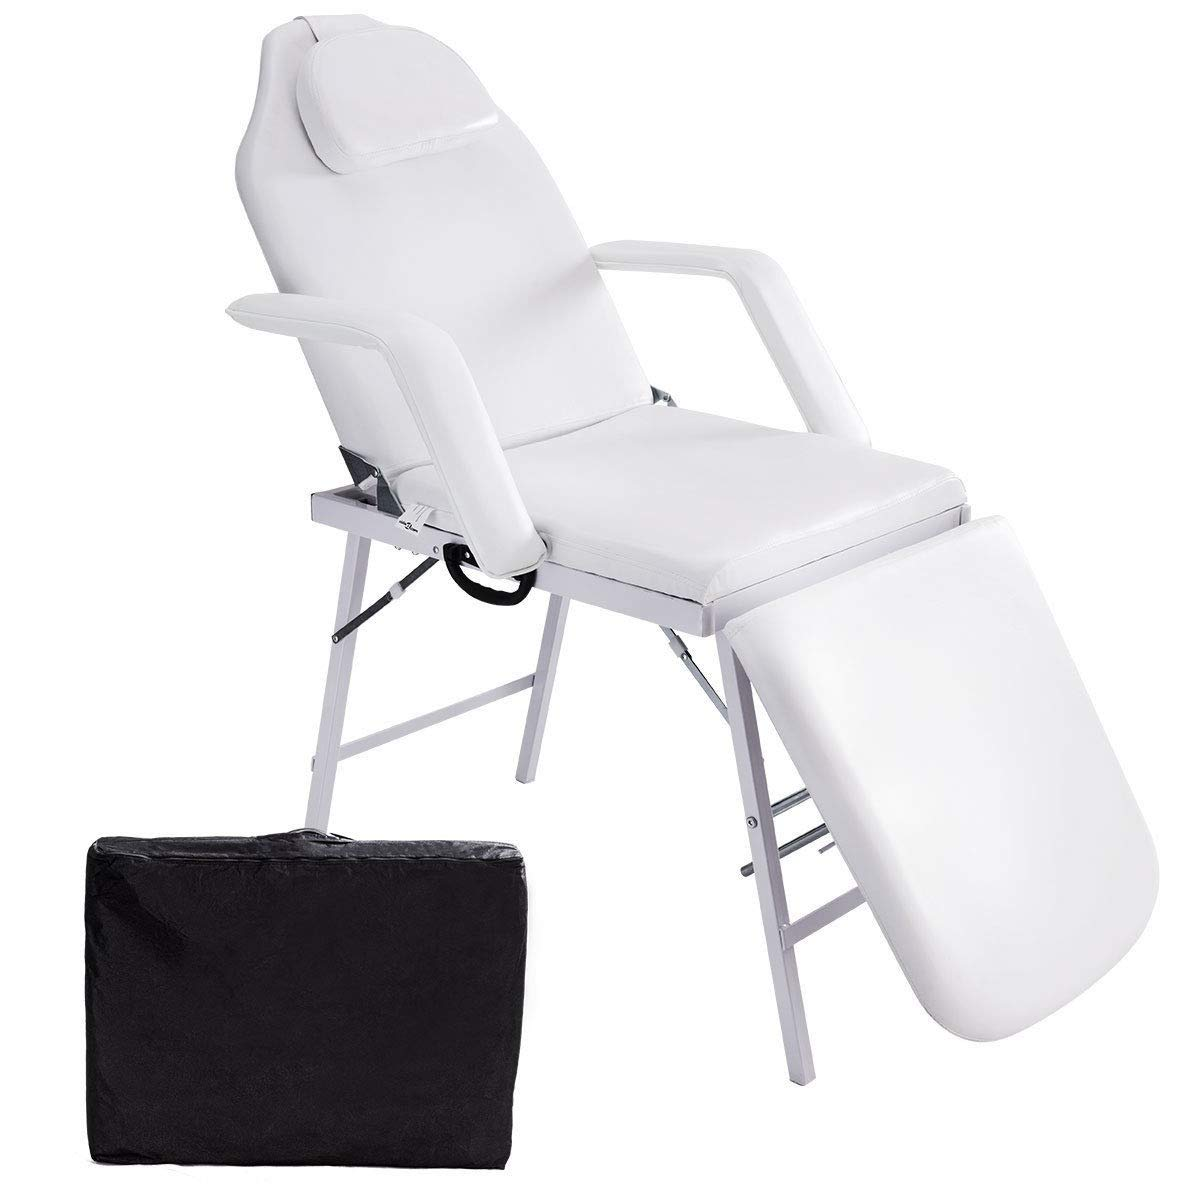 73''L Portable Adjustable Massage Table Chair Couch for Salon Beauty Physiotherapy Facial SPA Tattoo Household